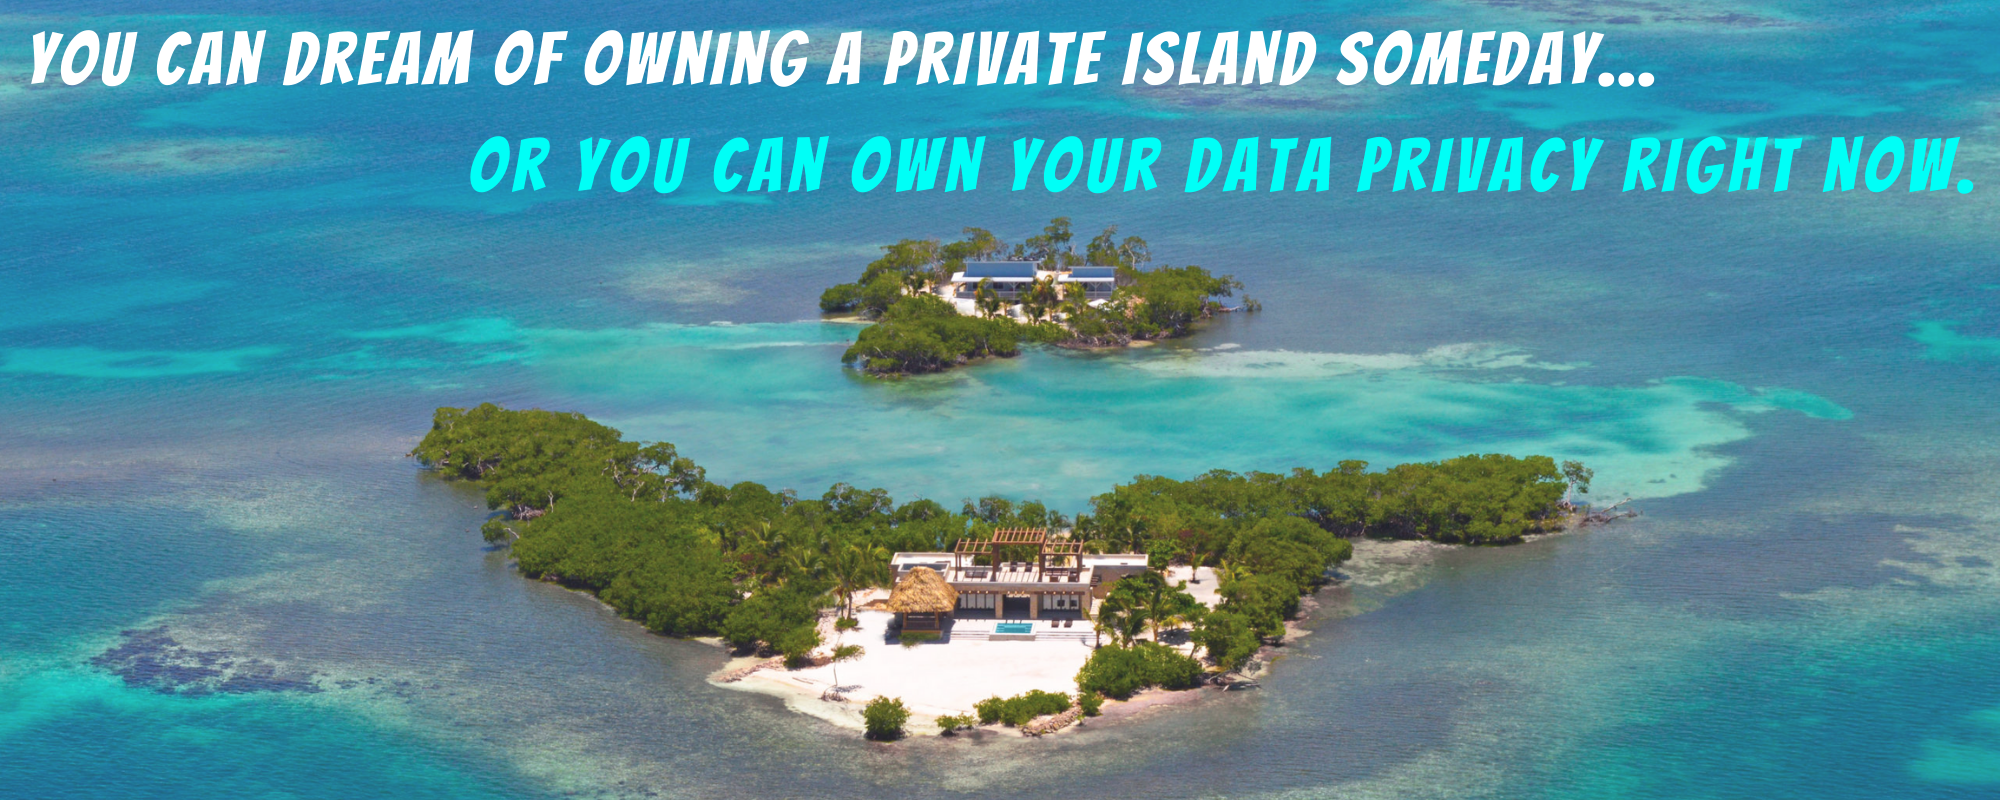 "Image of an island with the words ""You can dream of owning a private island someday... or you can own your data privacy right now."""